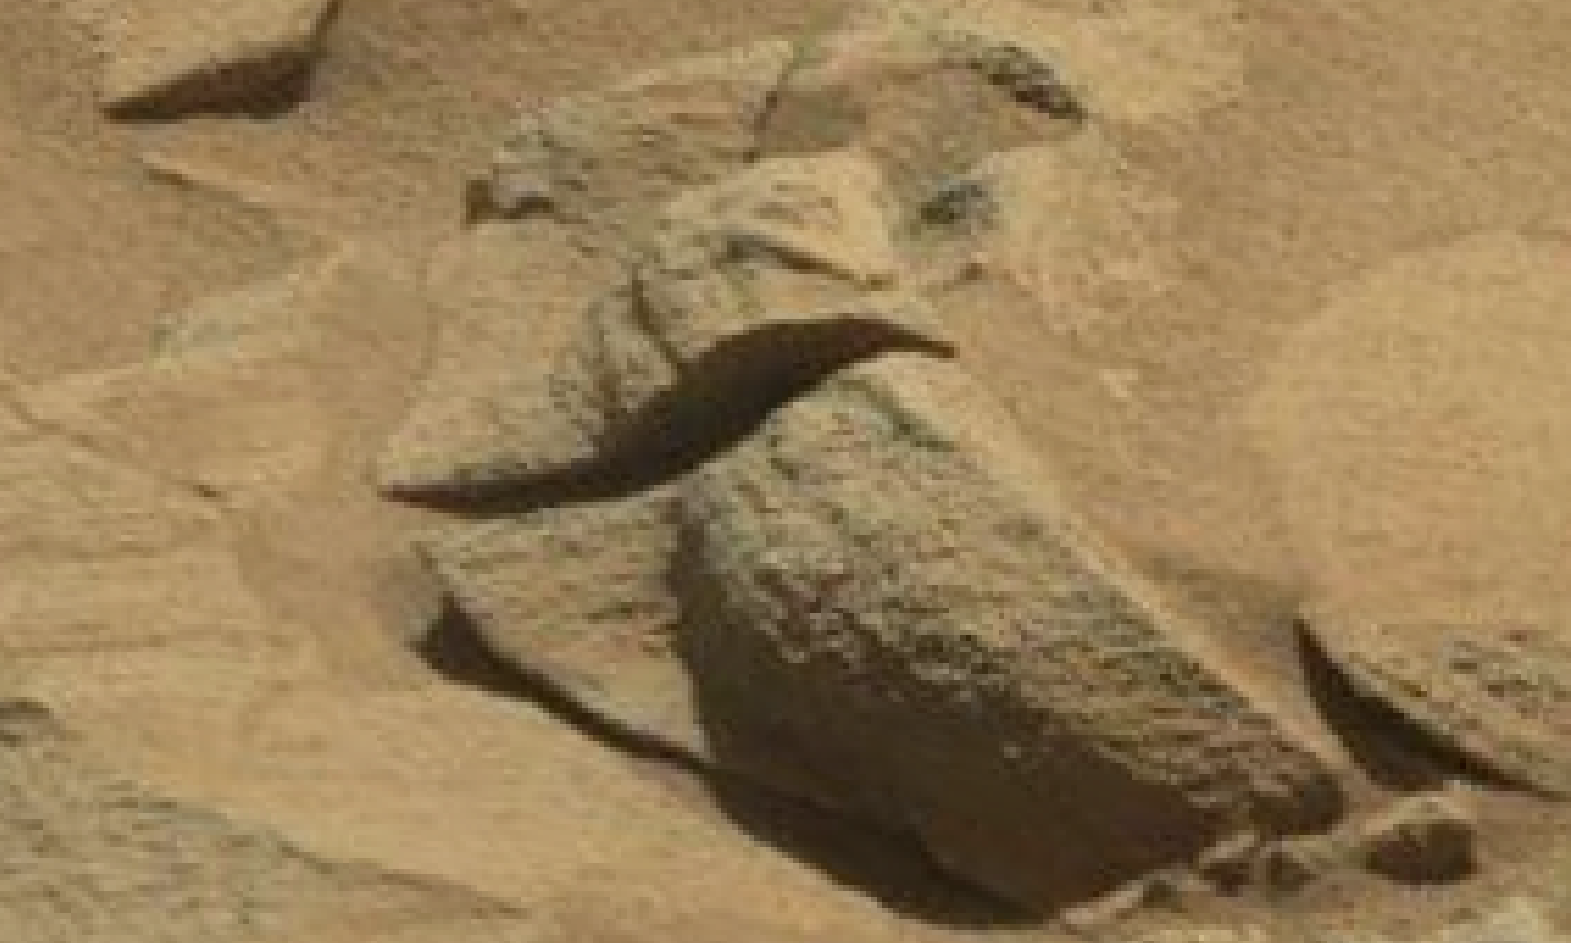 mars sol 1293 anomaly-artifacts 2 was life on mars